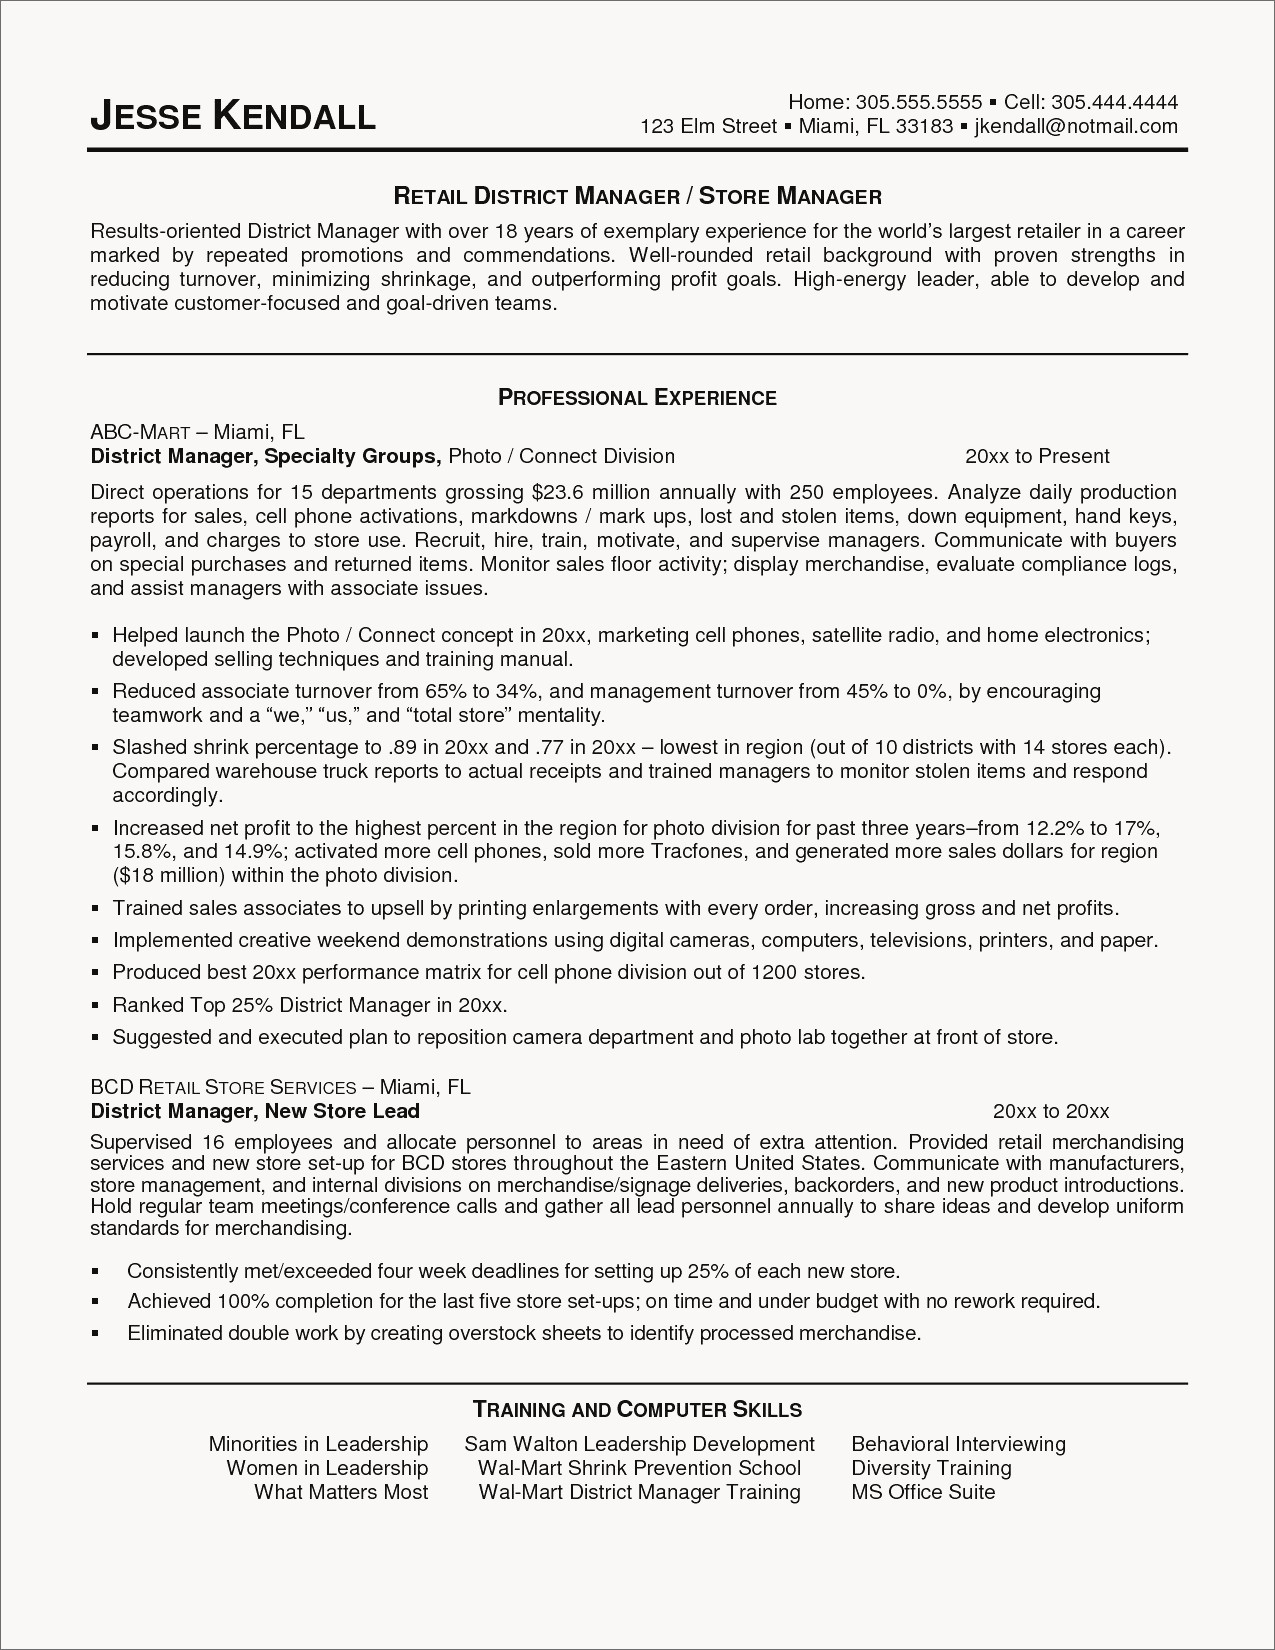 Portfolio Kindergarten Muster Frisch Example Cv and Resume